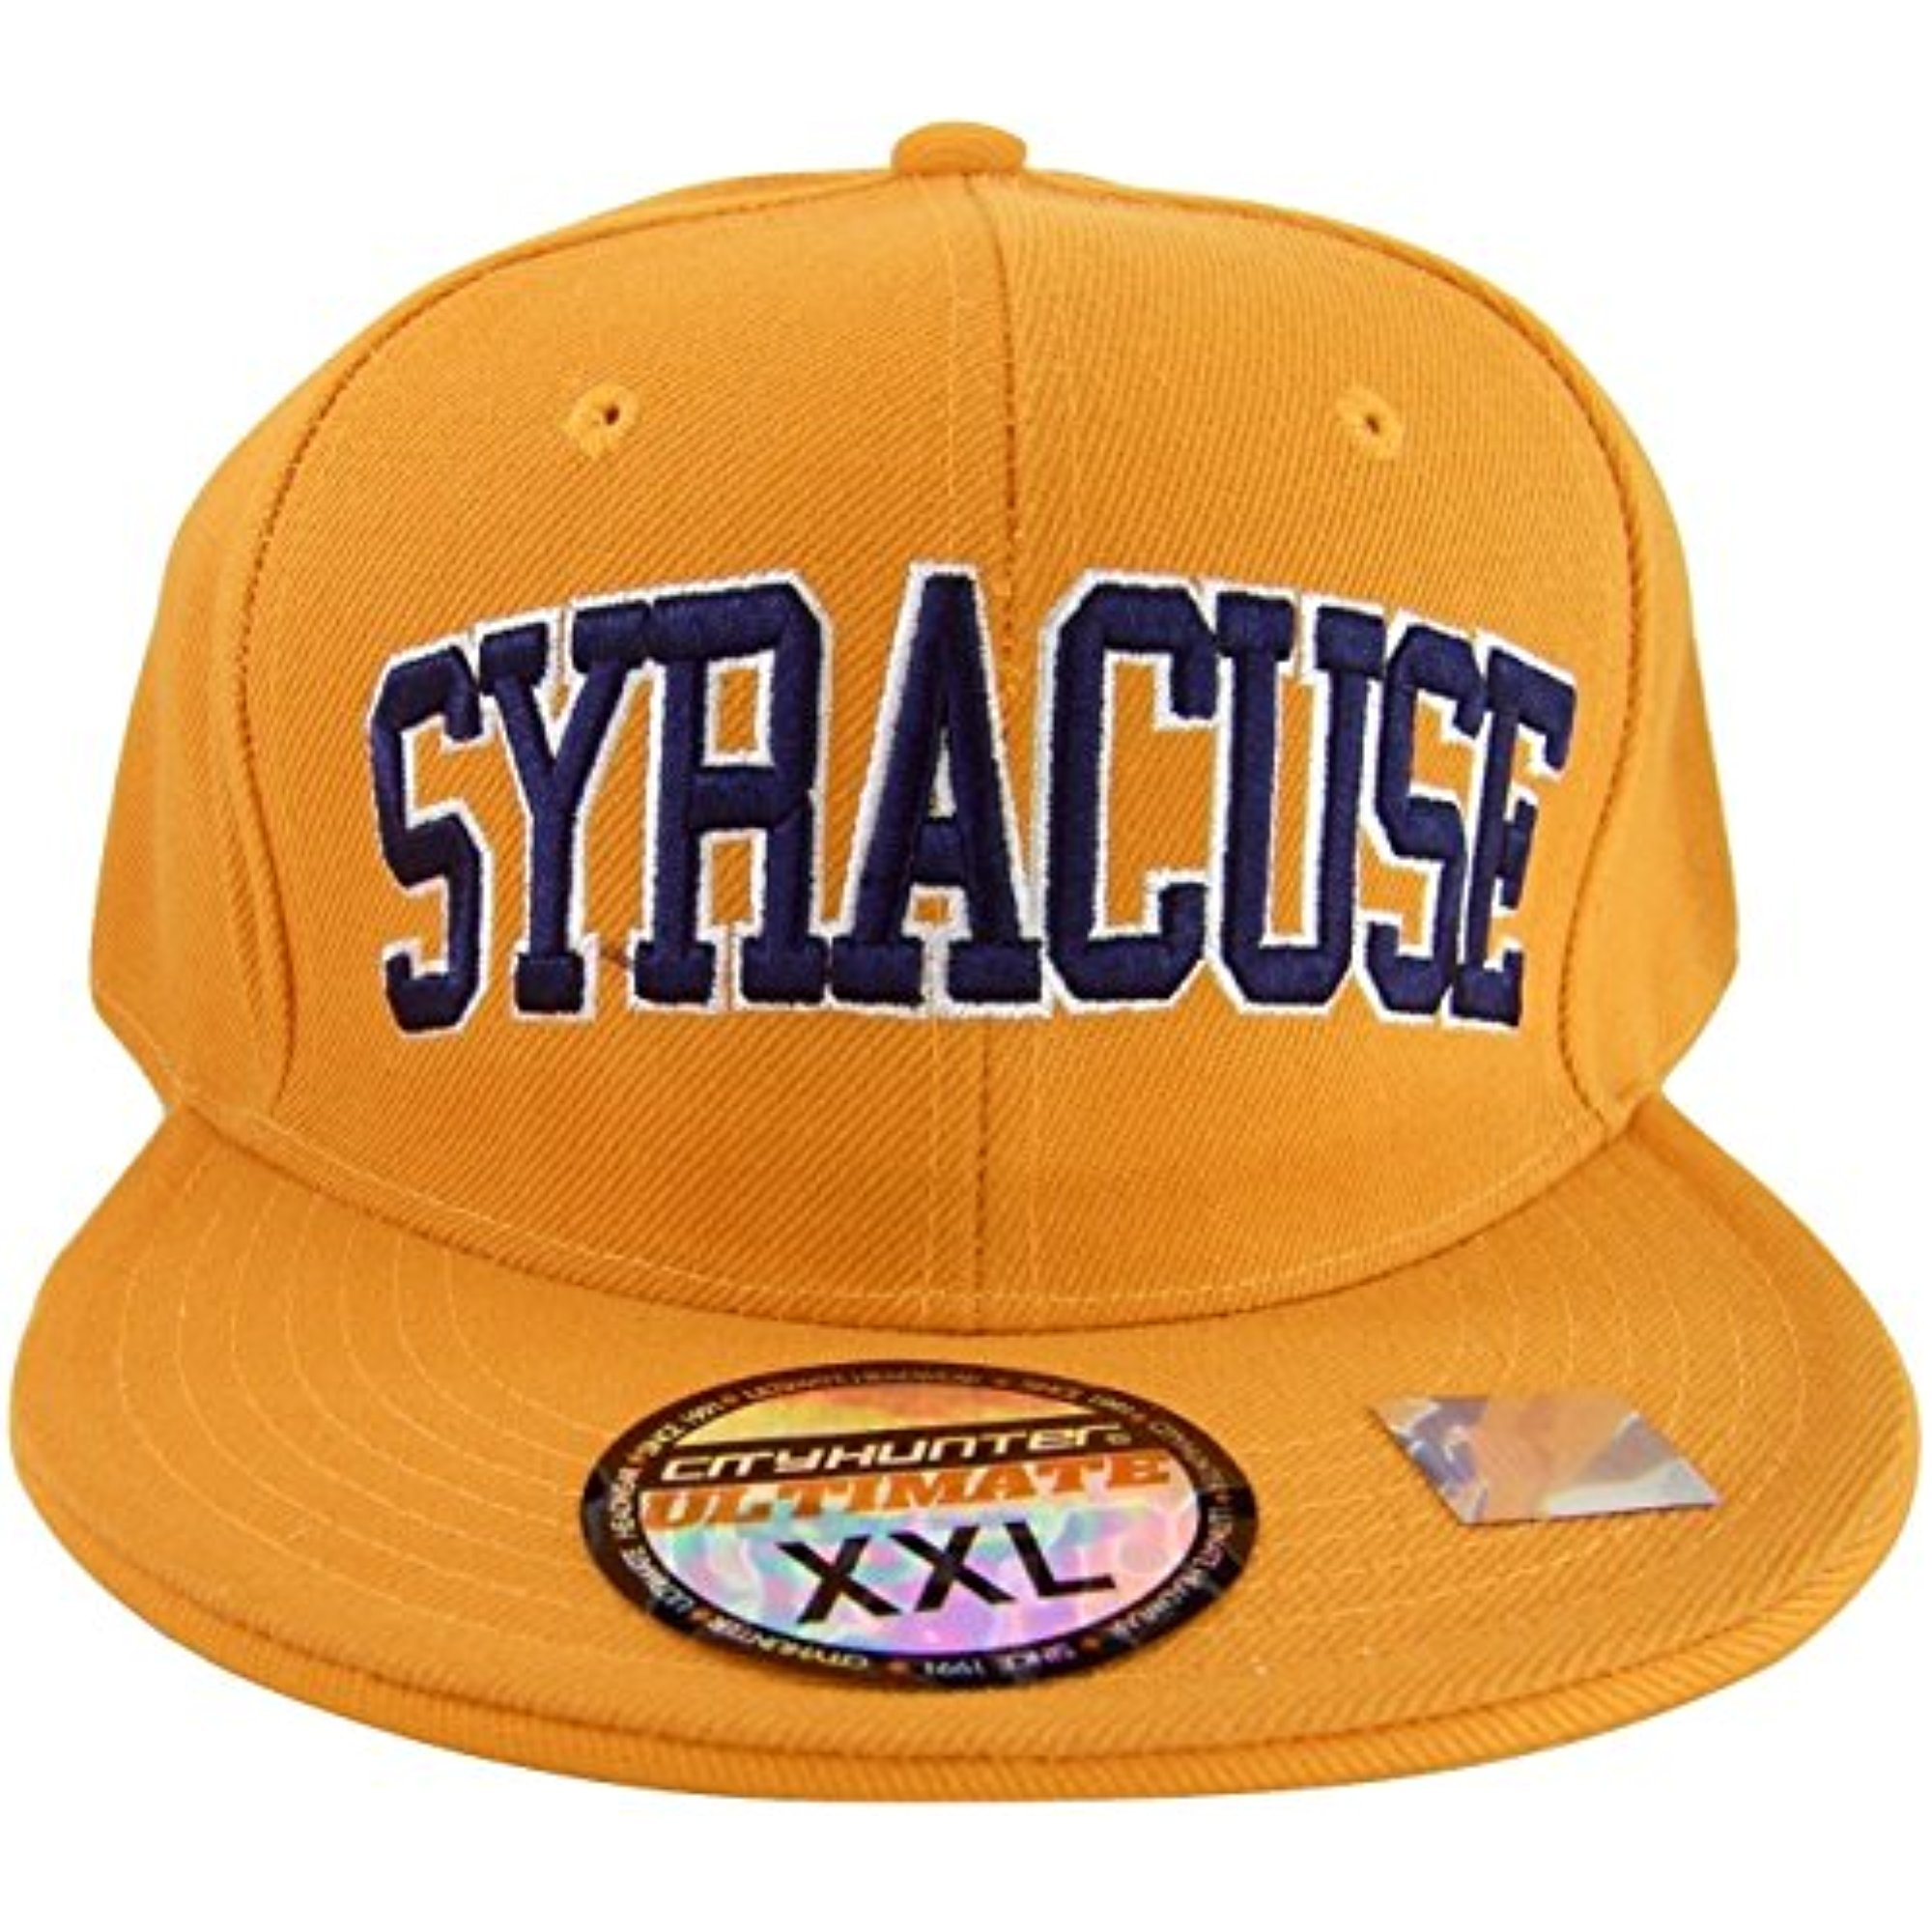 8a2dc17636a ... low price city hunter syracuse mens fitted baseball cap orange navy xx  large walmart fd7ea 02466